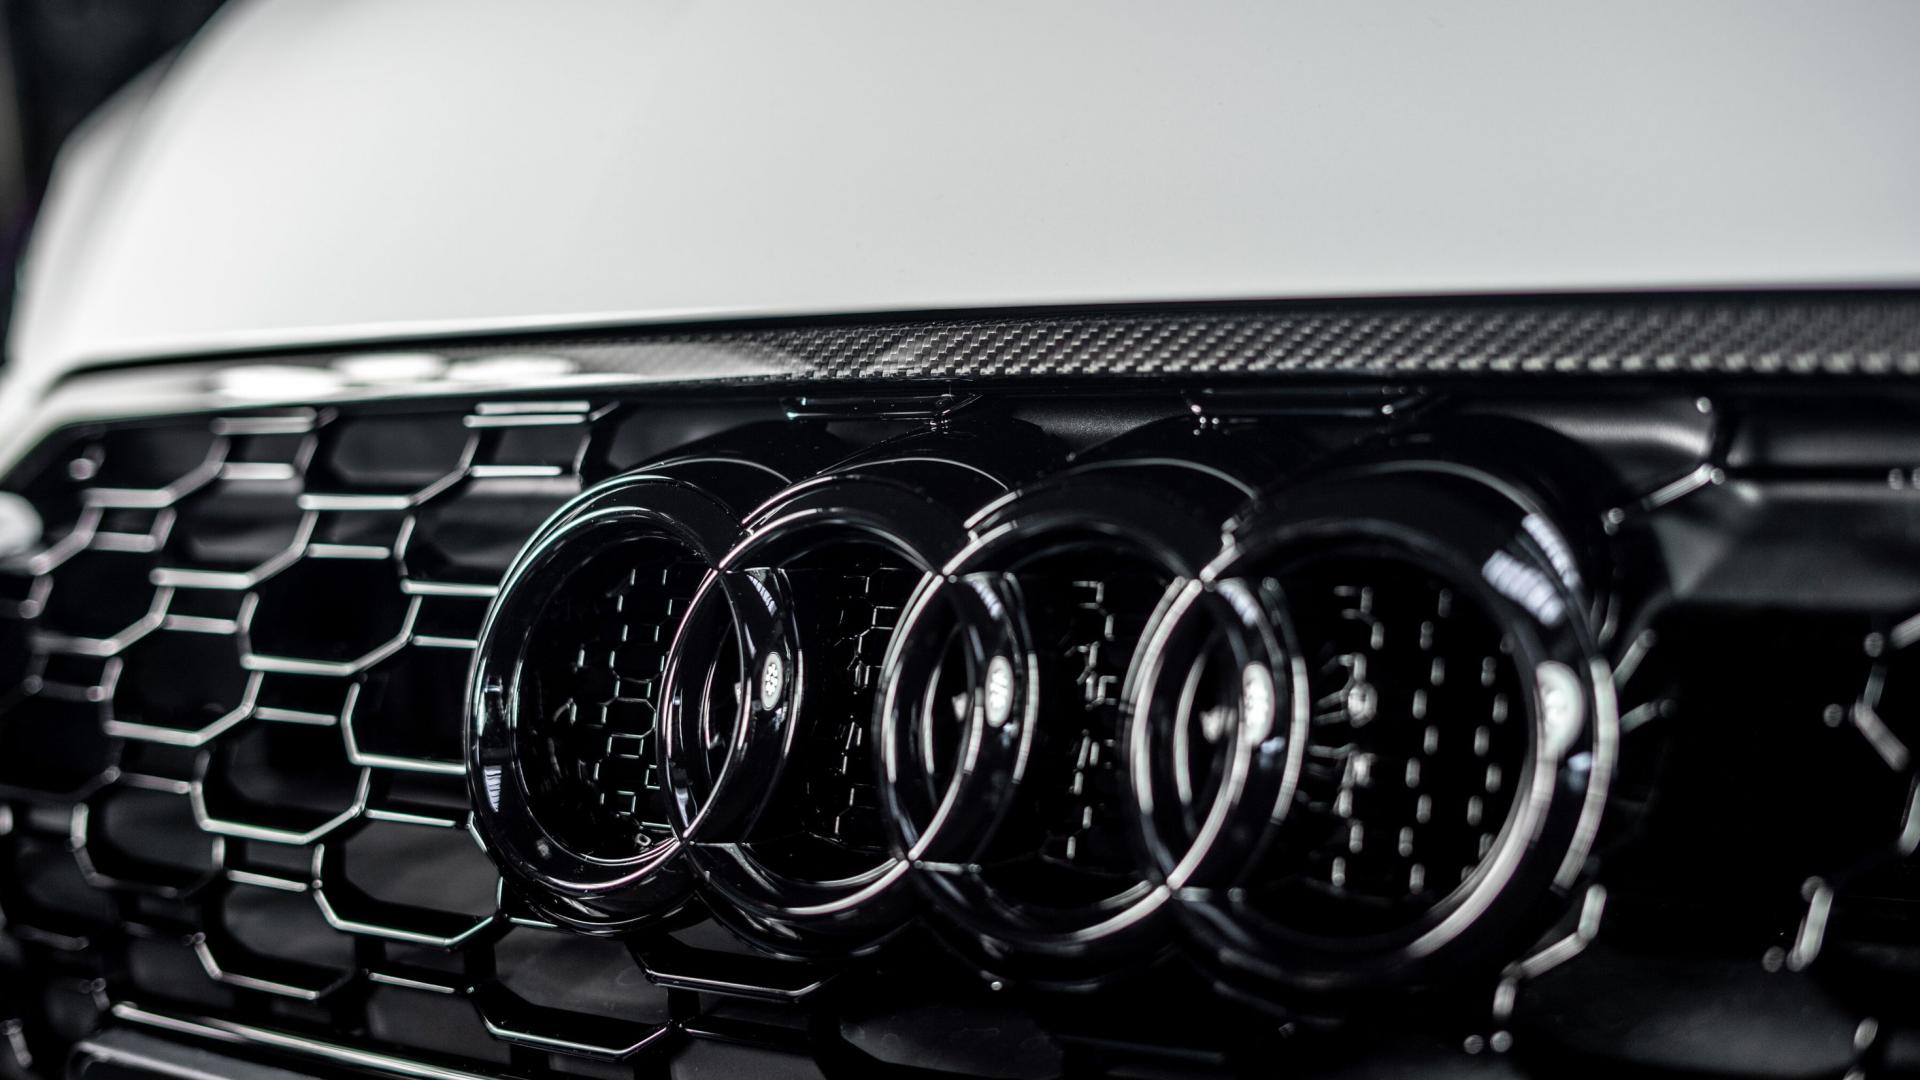 Abt Audi RS5-R Sportback grill logo